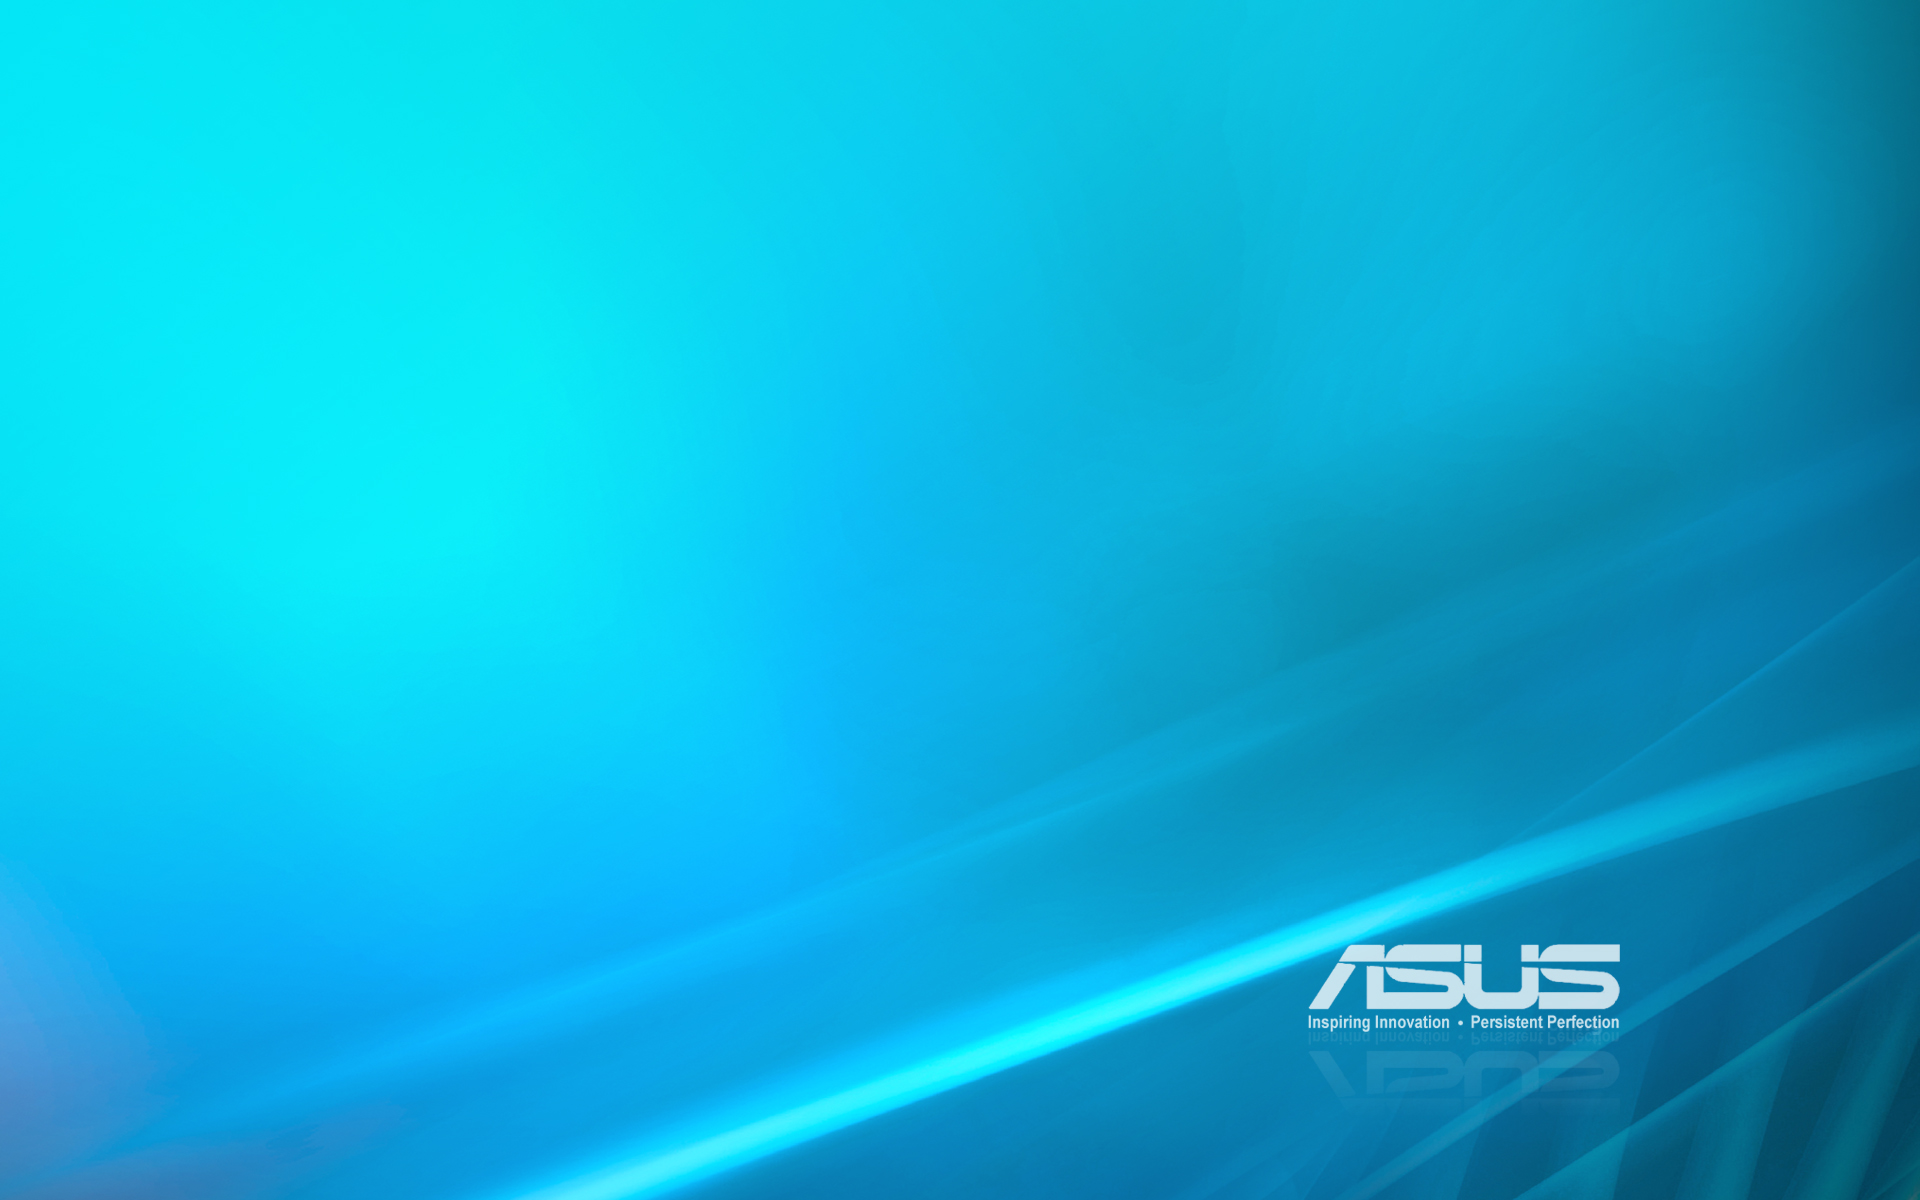 Asus wallpaper hd wallpapersafari for Photo fond ecran hd